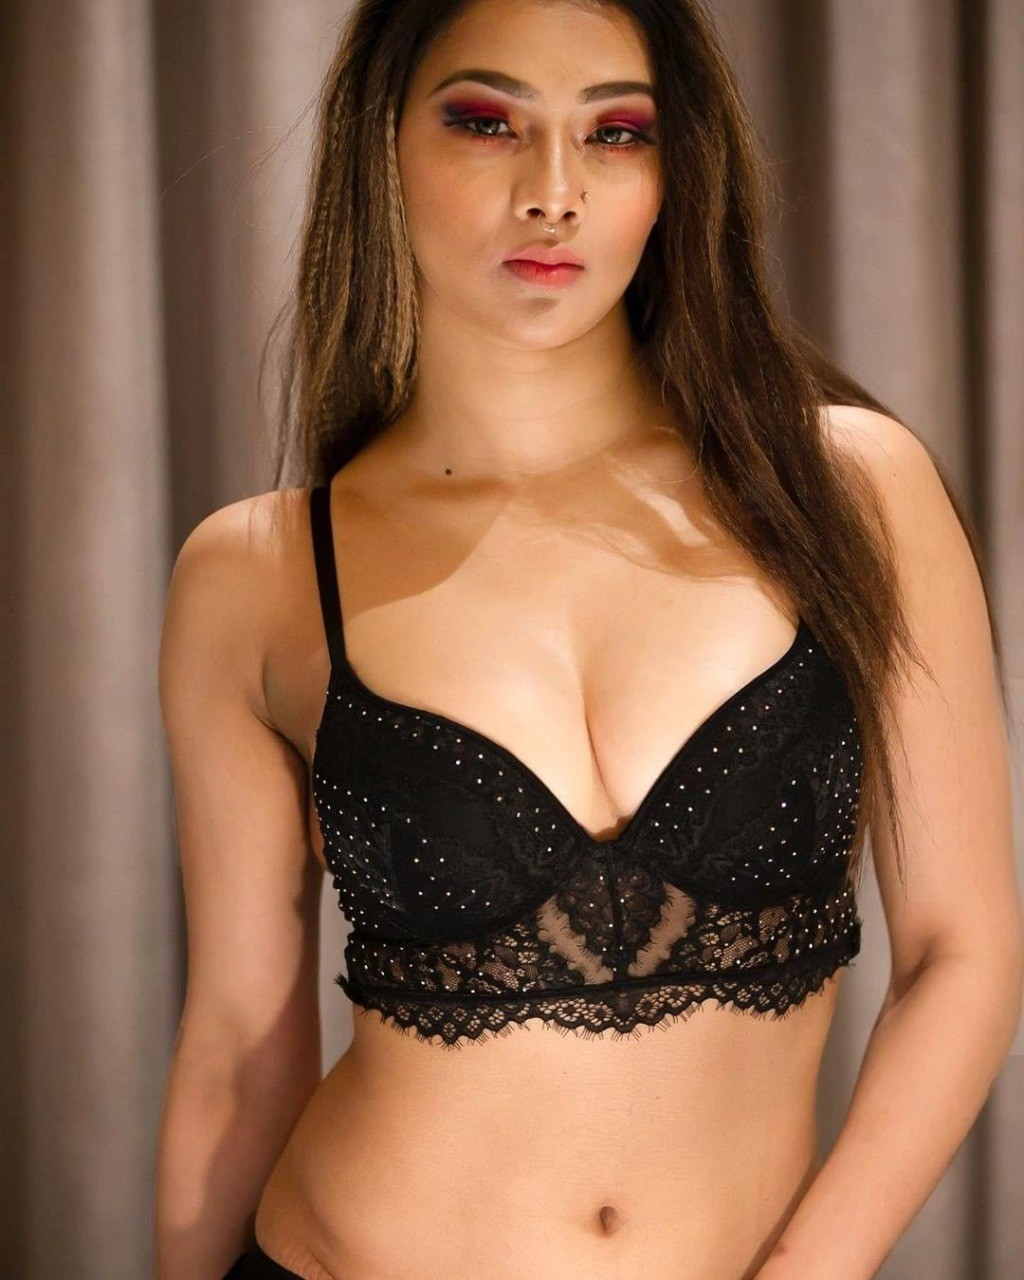 Escort in Genting Highland